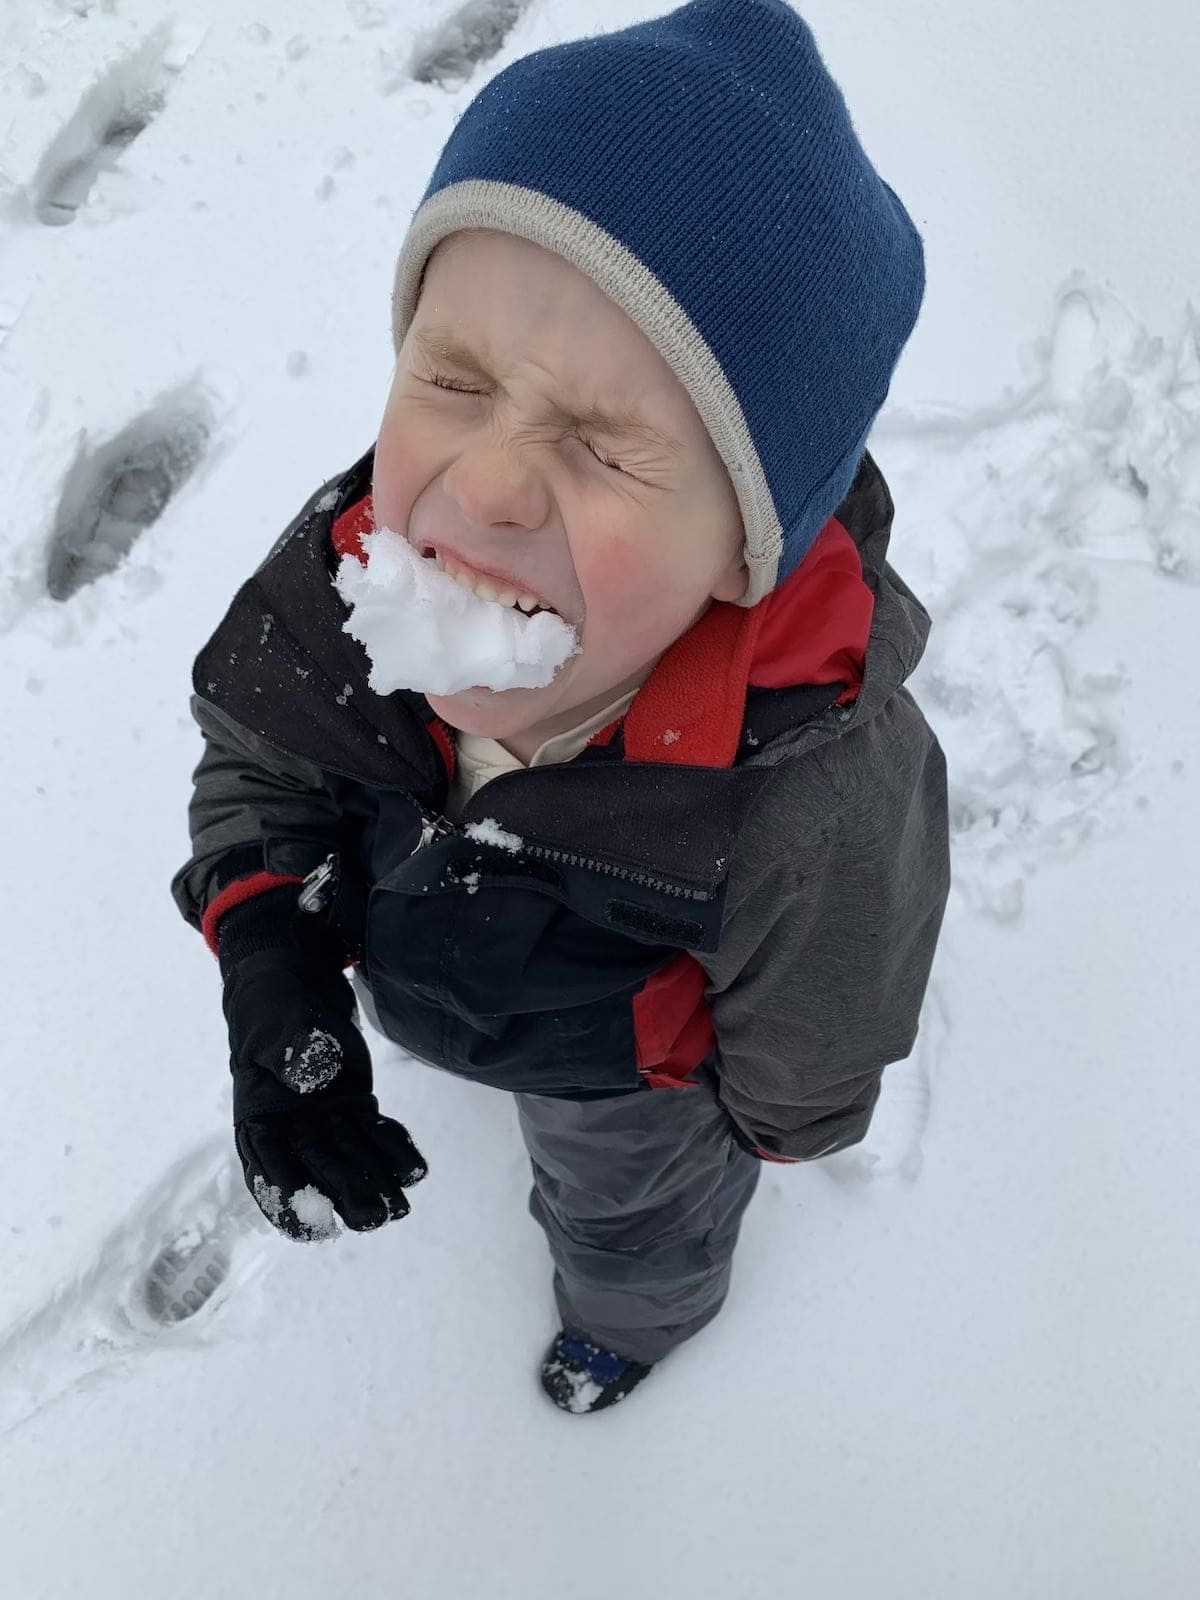 blake with snow in his mouth